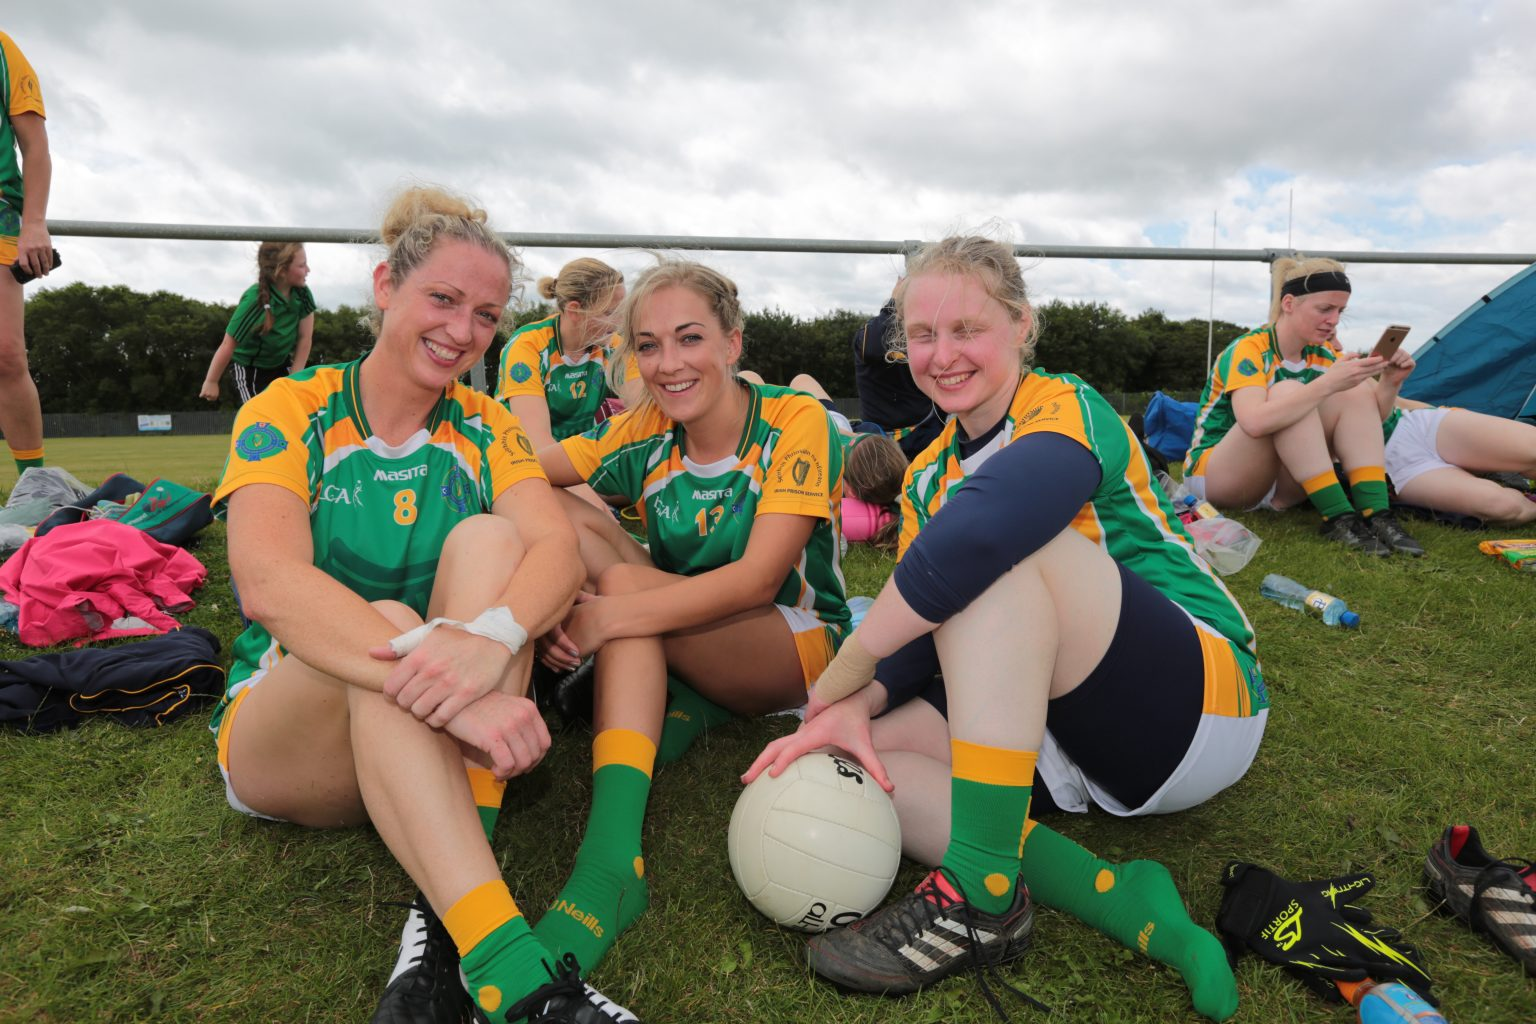 Three ladies football players in green jersey with yellow sleeves sitting on the grass at the Interfirms competition